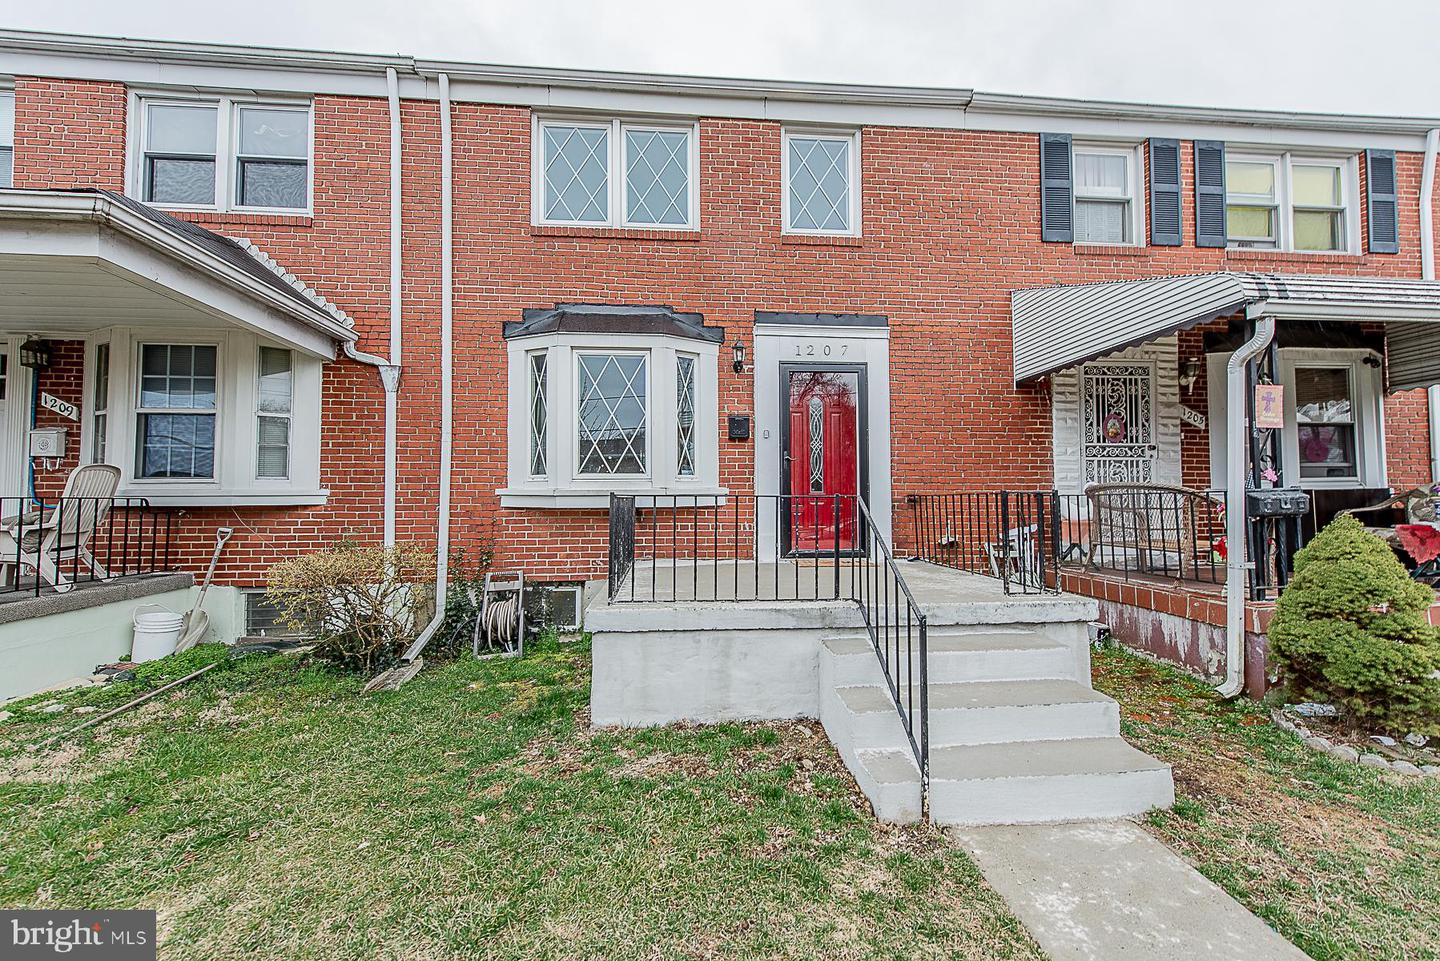 1207 Walker Ave, Baltimore, MD 21239, MLS #MDBA440844 - Howard Hanna